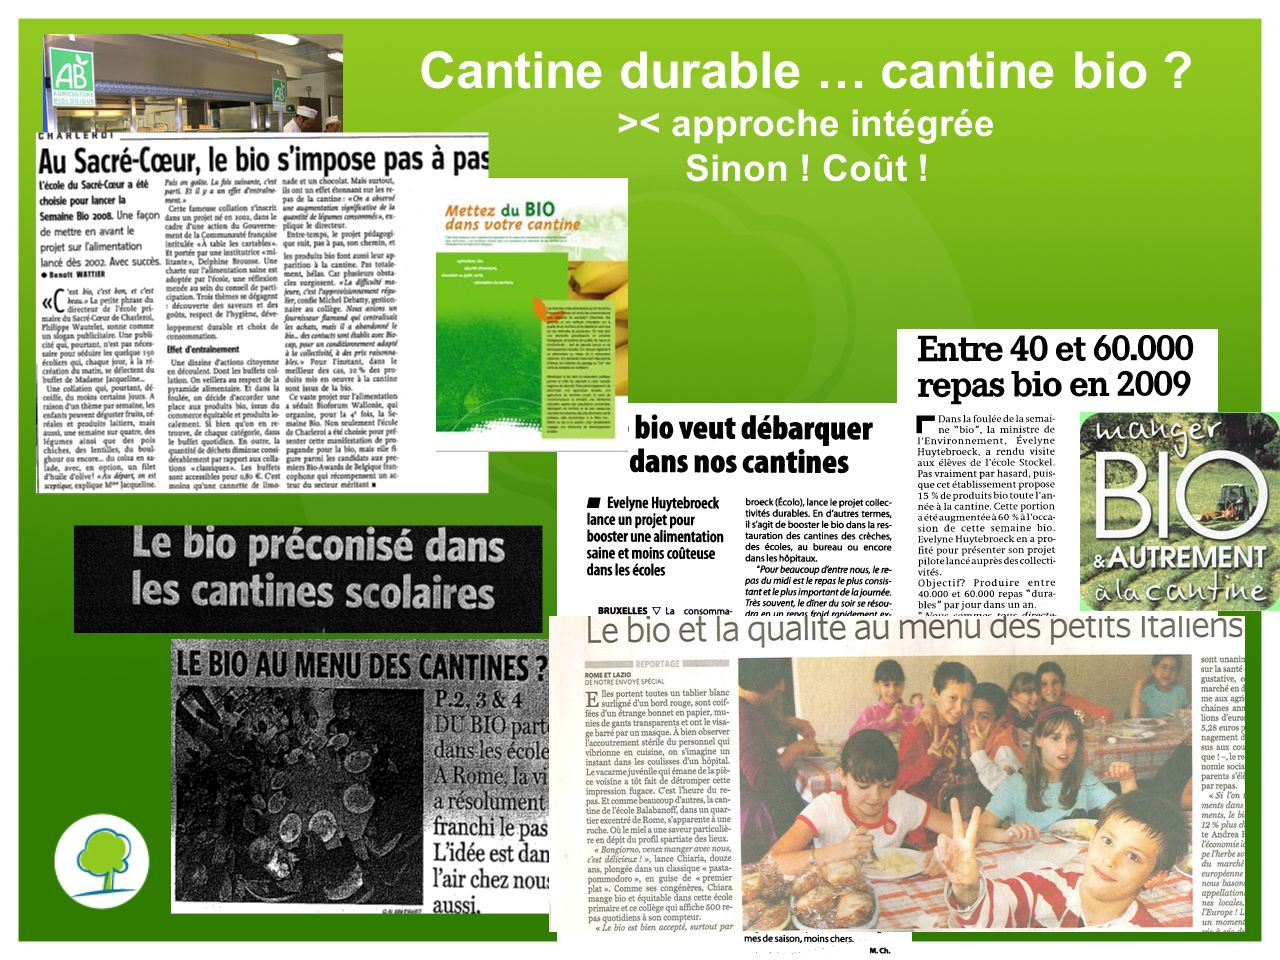 Cantine durable … cantine bio >< approche intégrée